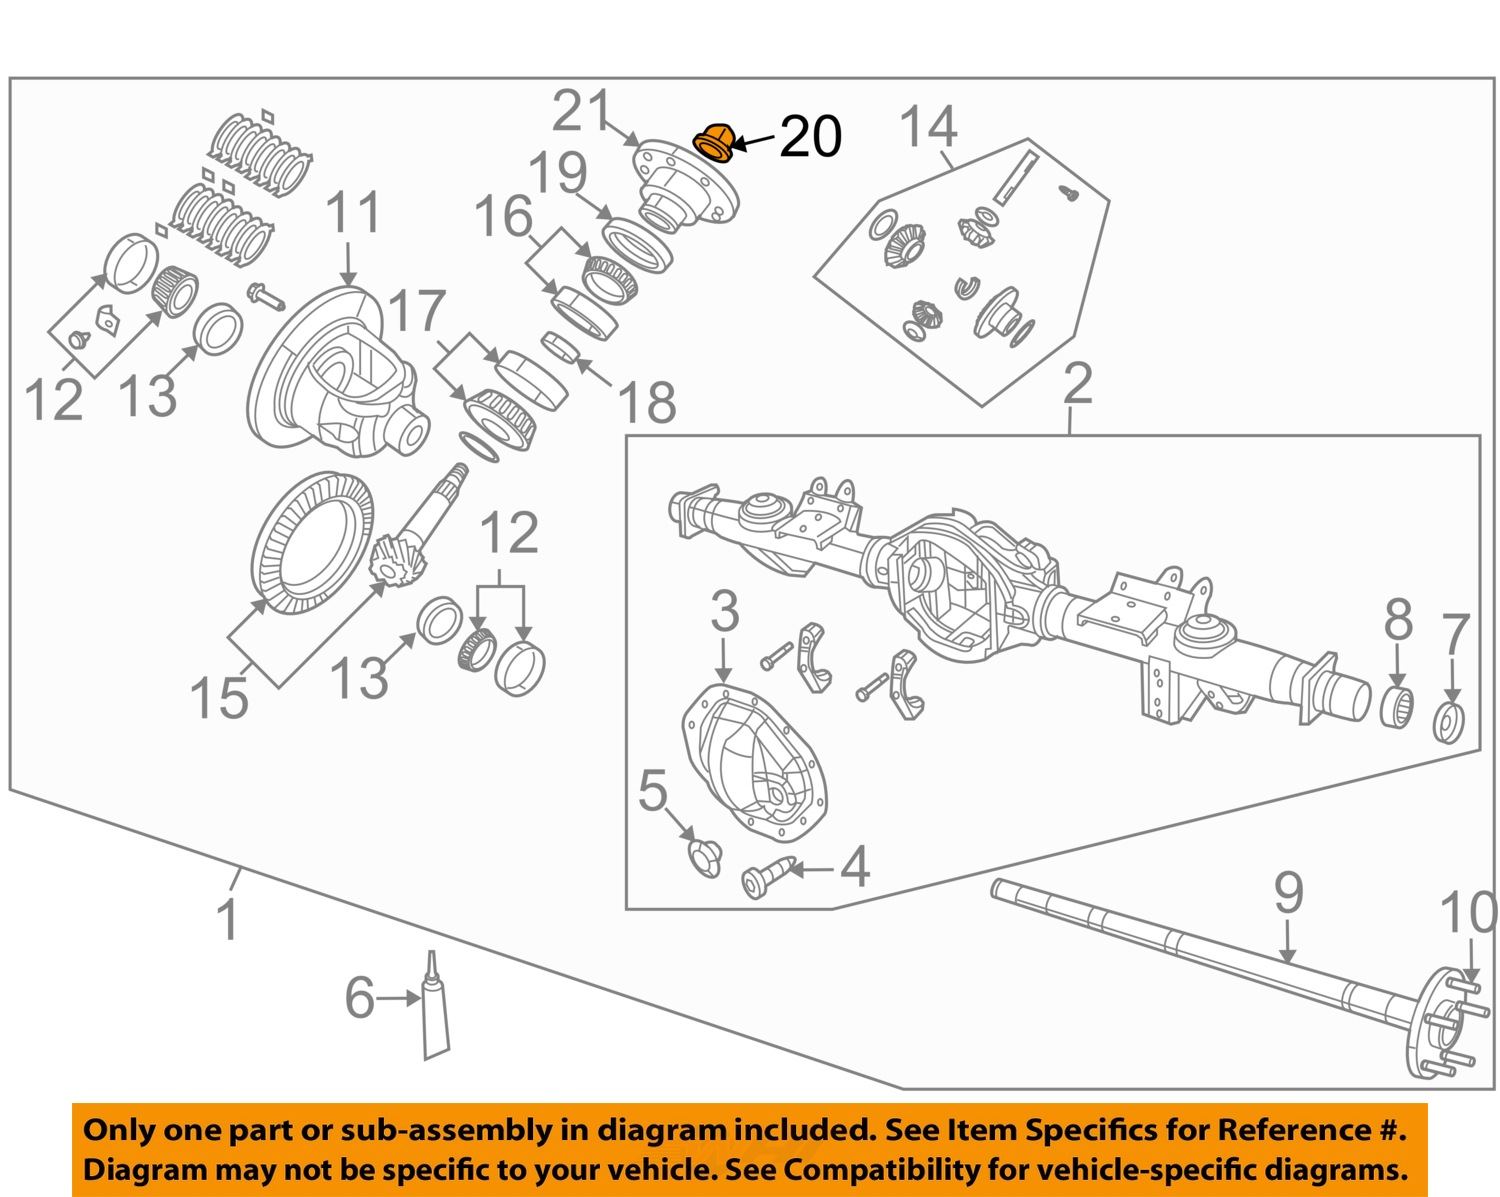 dodge ram oem parts diagram what does nca mean on a wiring 2002 12 1500 differential pinion nut